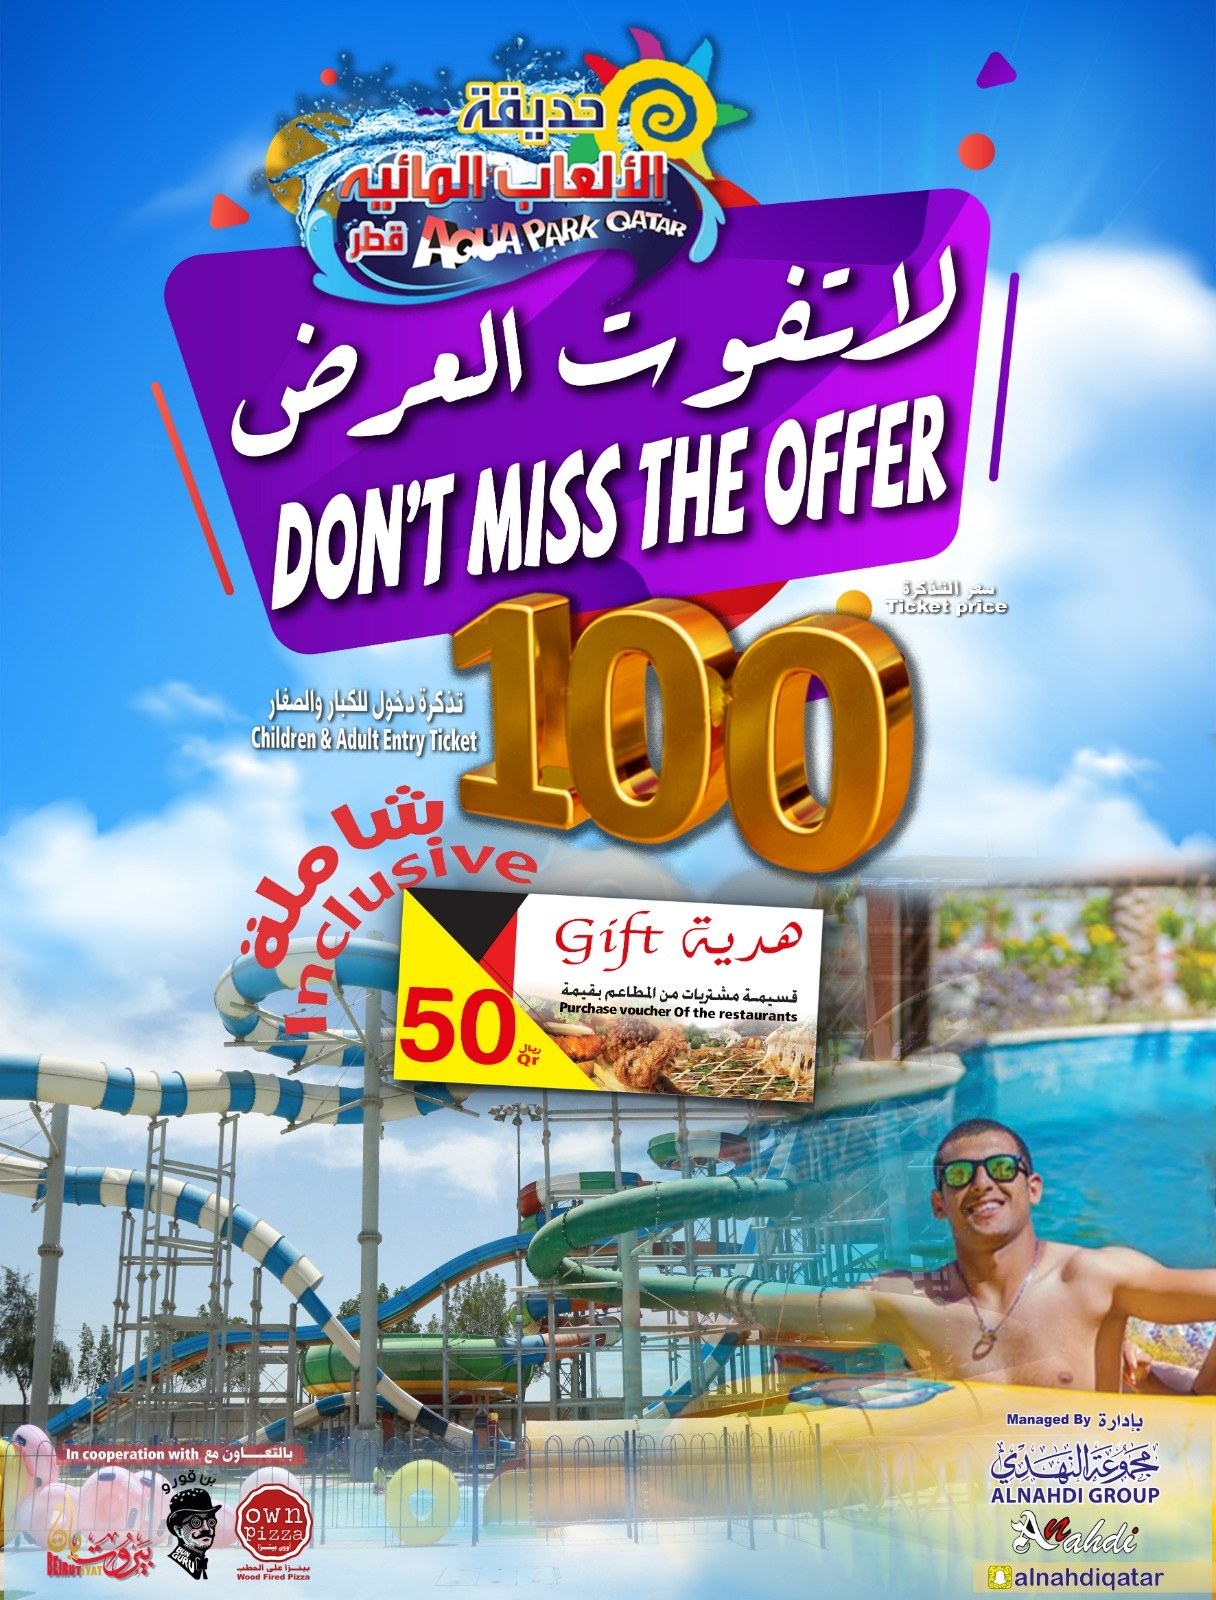 Aqua Park Qatar | The biggest offer ever from Aqua Park Qatar. Entry ticket only QR100 includes QR50 meal voucher.